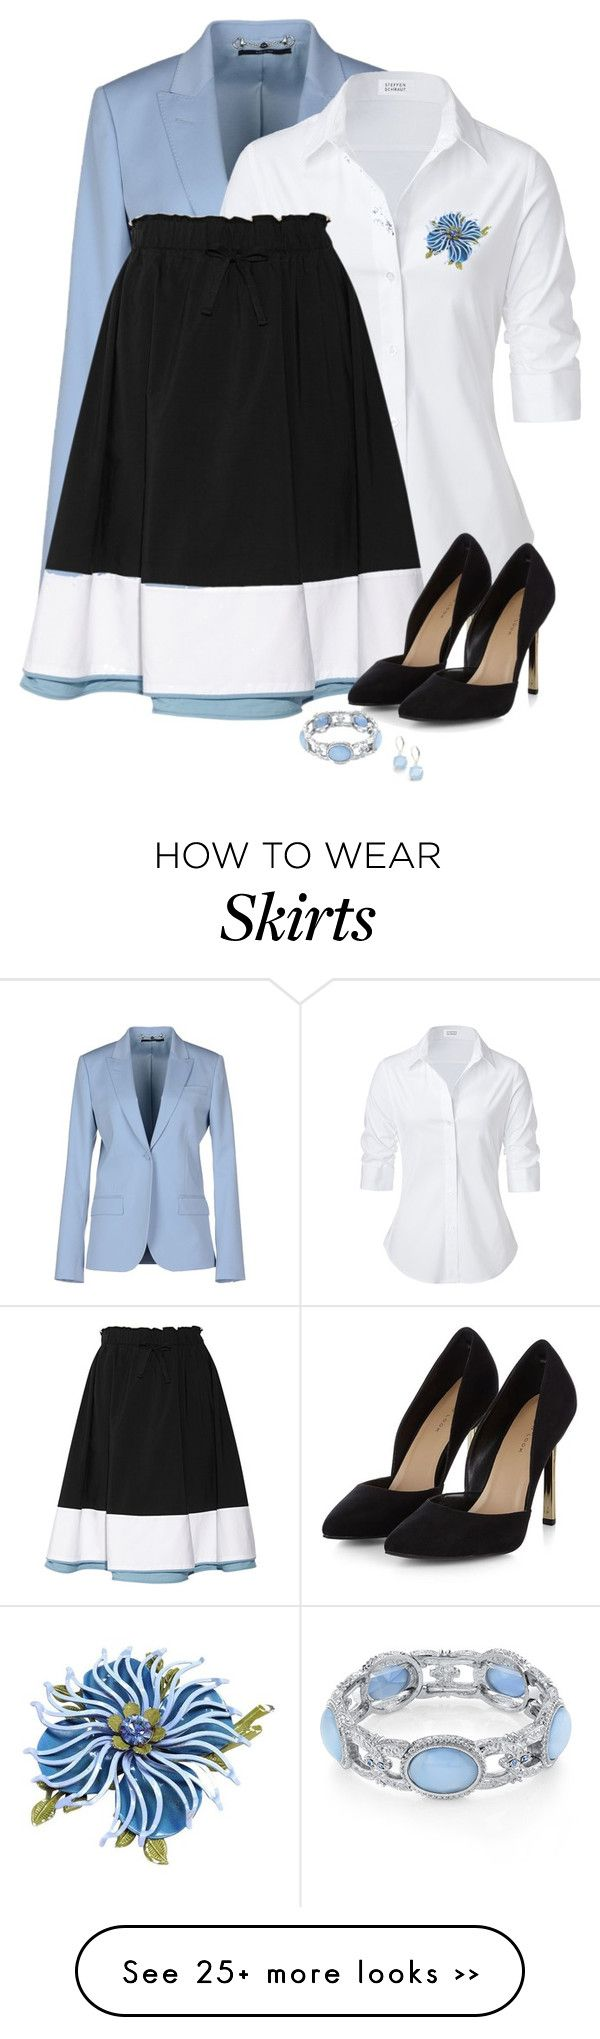 """""""Color Block Skirt"""" by missdoolittle on Polyvore"""